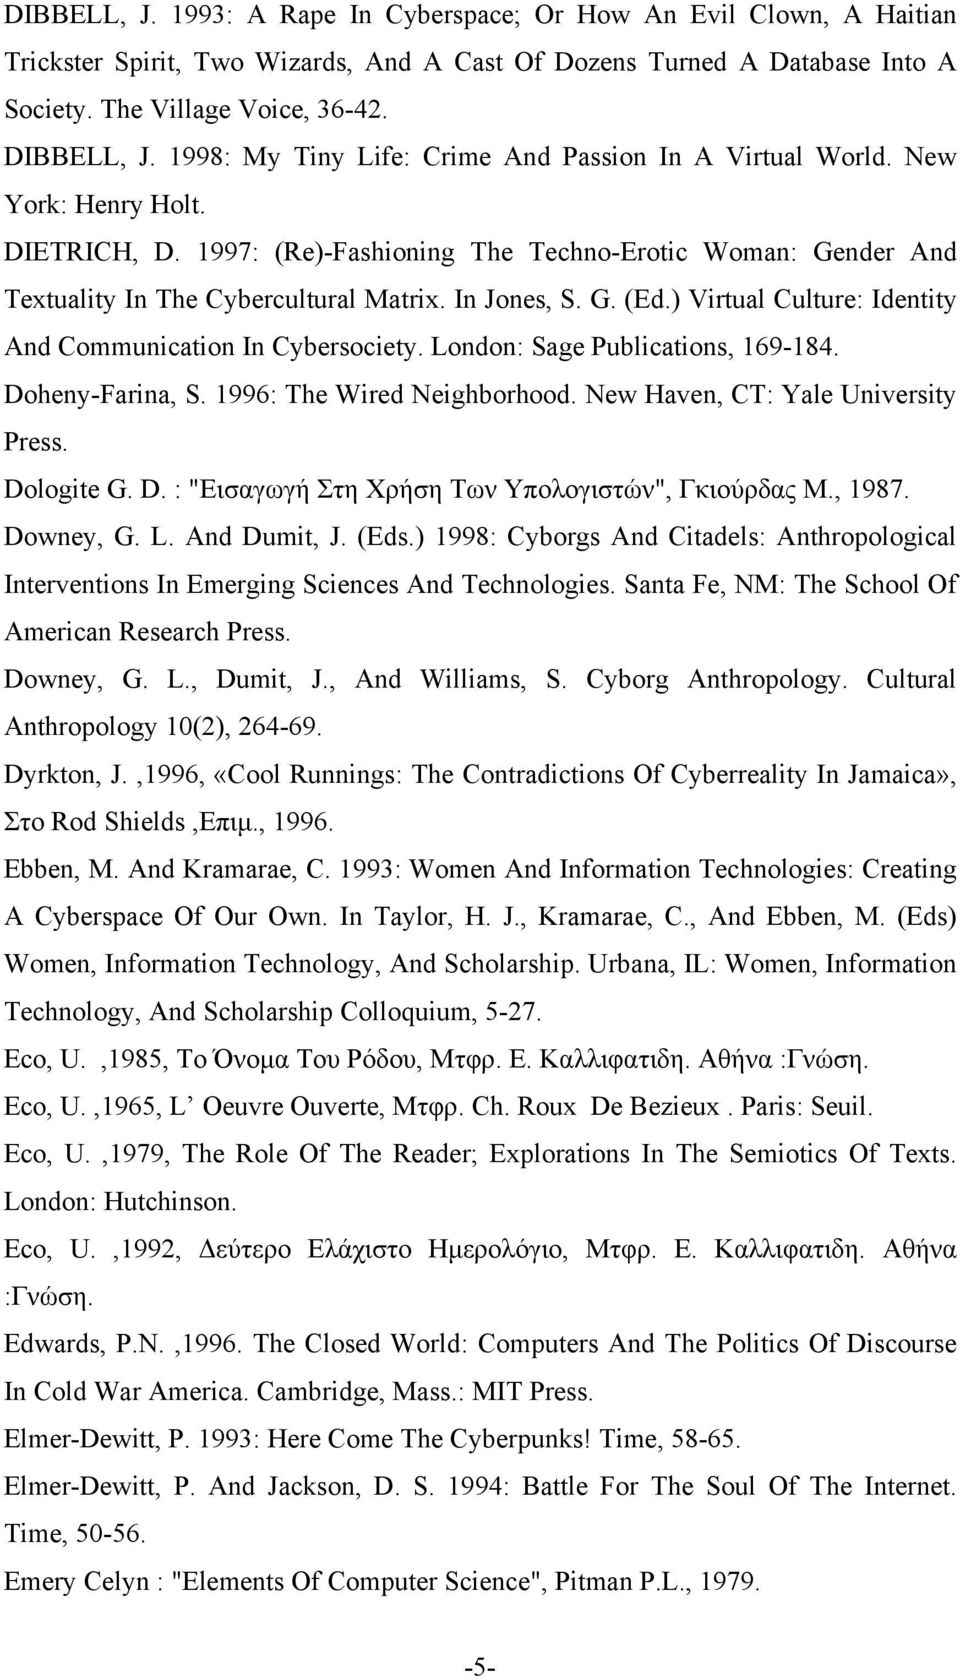 In Jones, S. G. (Ed.) Virtual Culture: Identity And Communication In Cybersociety. London: Sage Publications, 169-184. Doheny-Farina, S. 1996: The Wired Neighborhood.